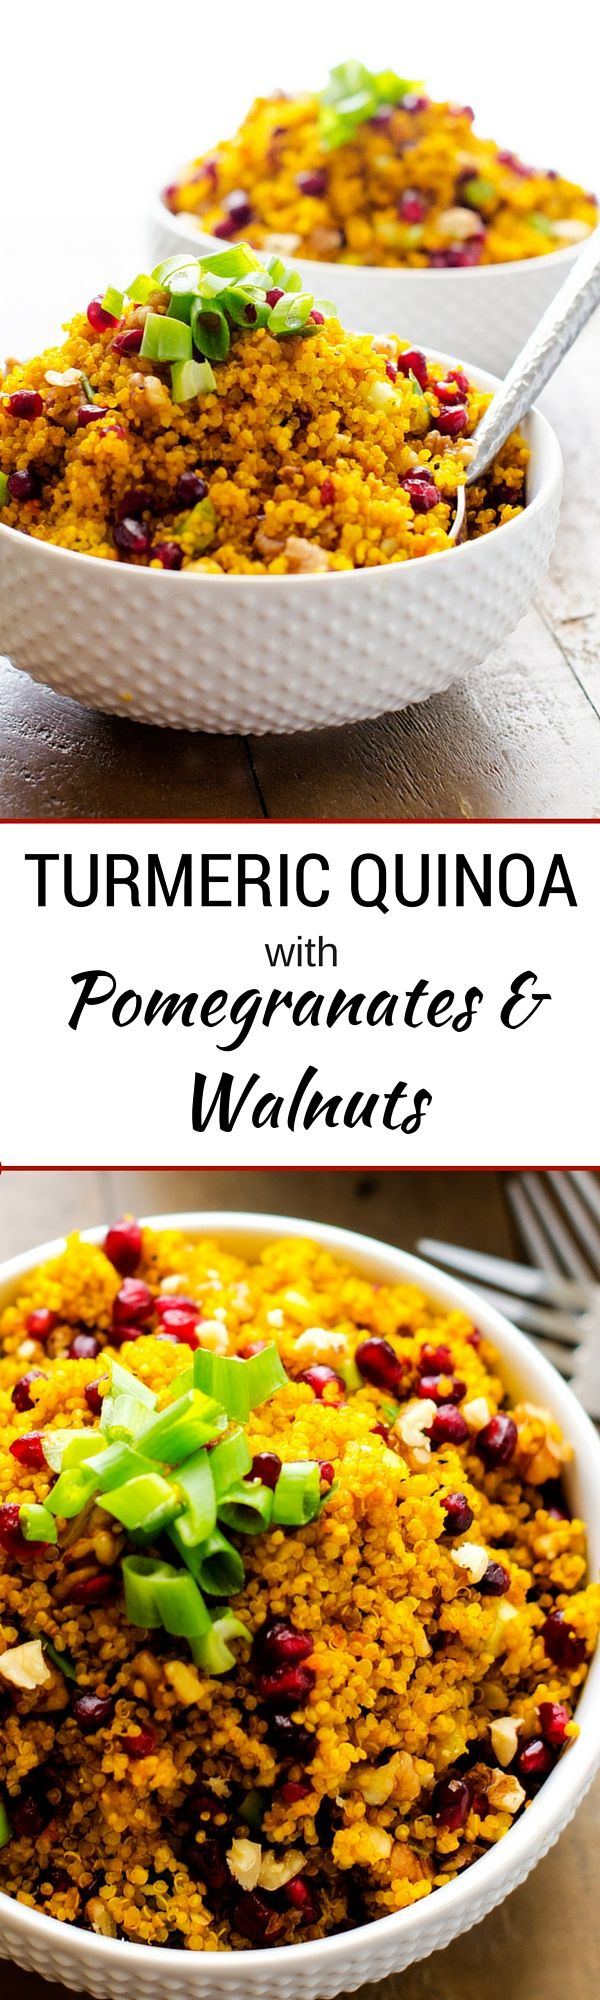 Turmeric Quinoa with Pomegranates and Walnuts (sponsored) - without the walnuts for me!